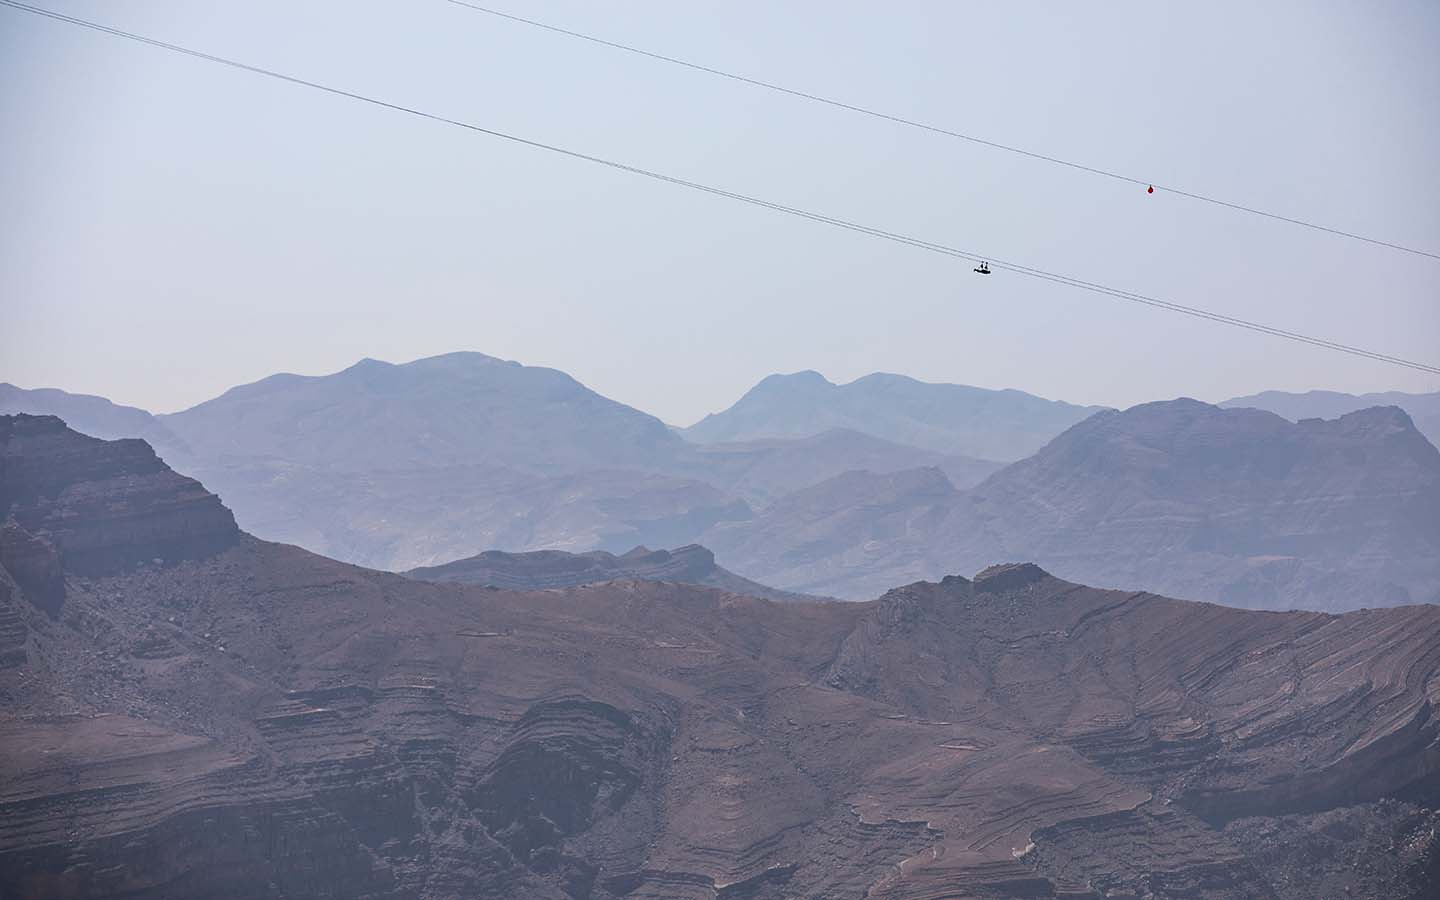 World's longest zip line at Jebel Jais, Ras Al Khaimah